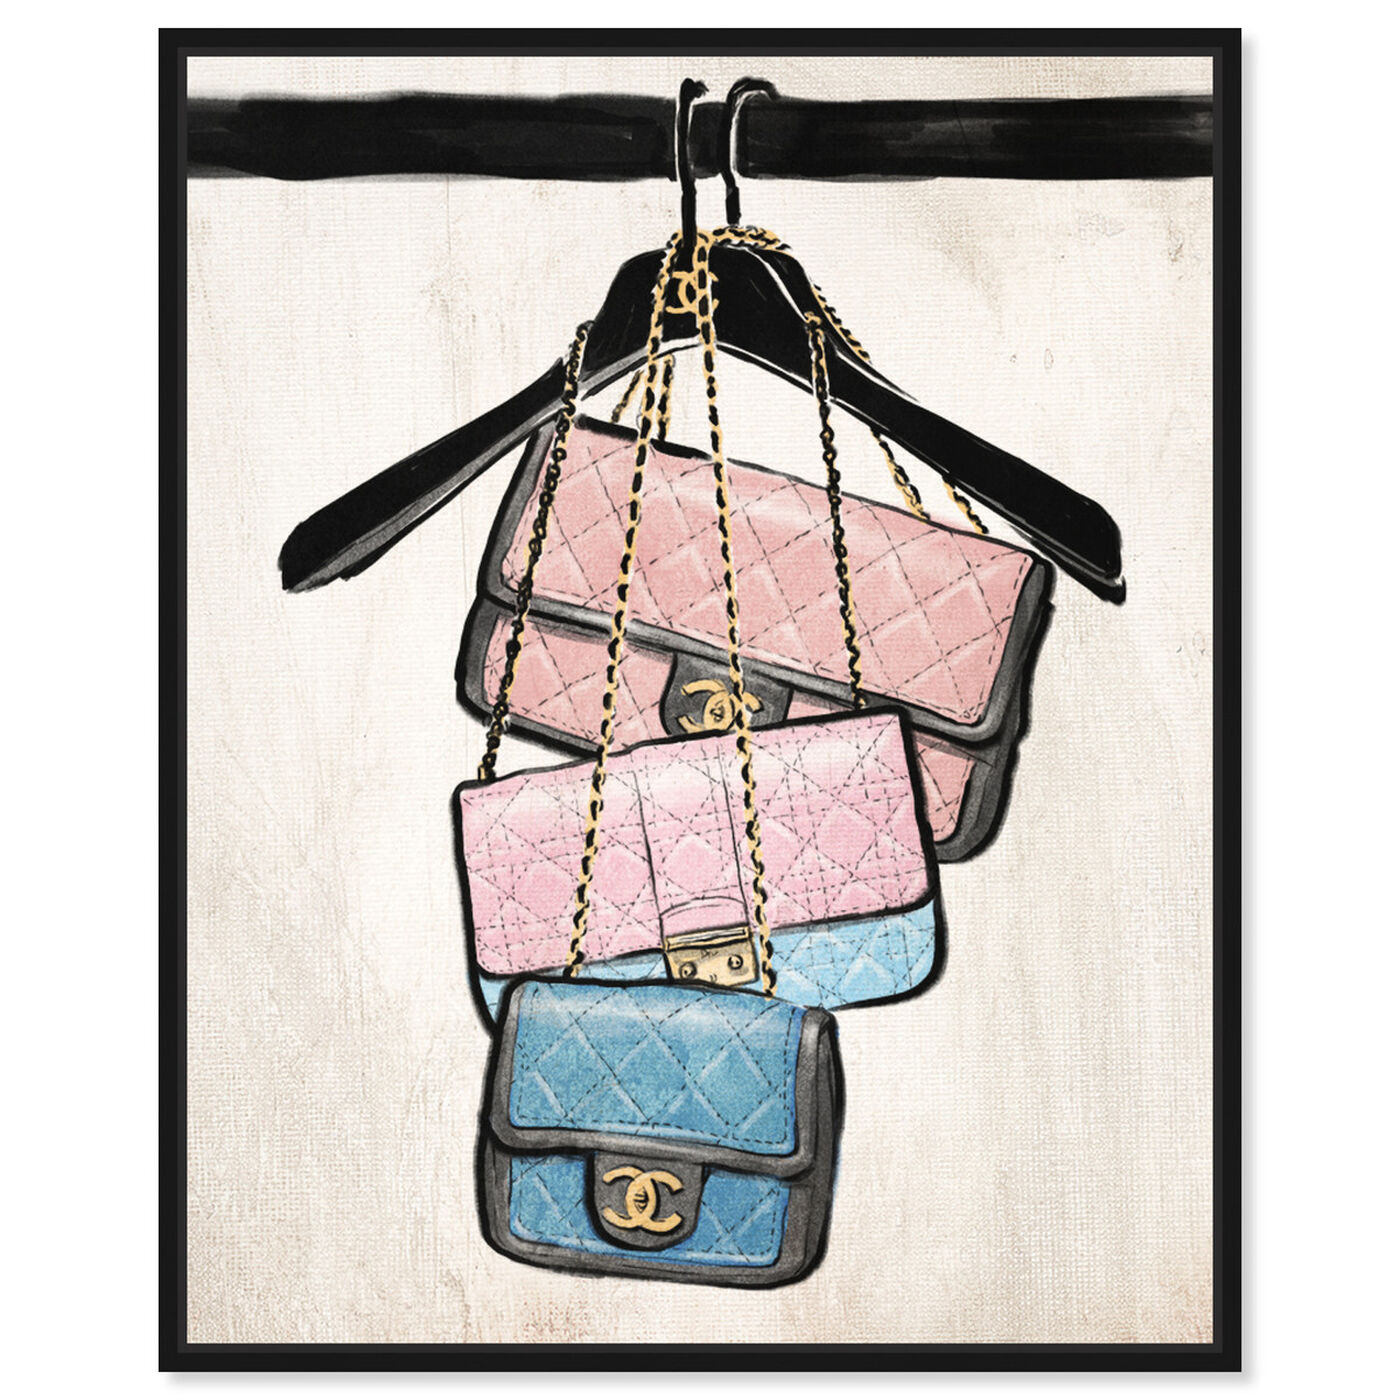 Front view of Closet Purses featuring fashion and glam and handbags art.